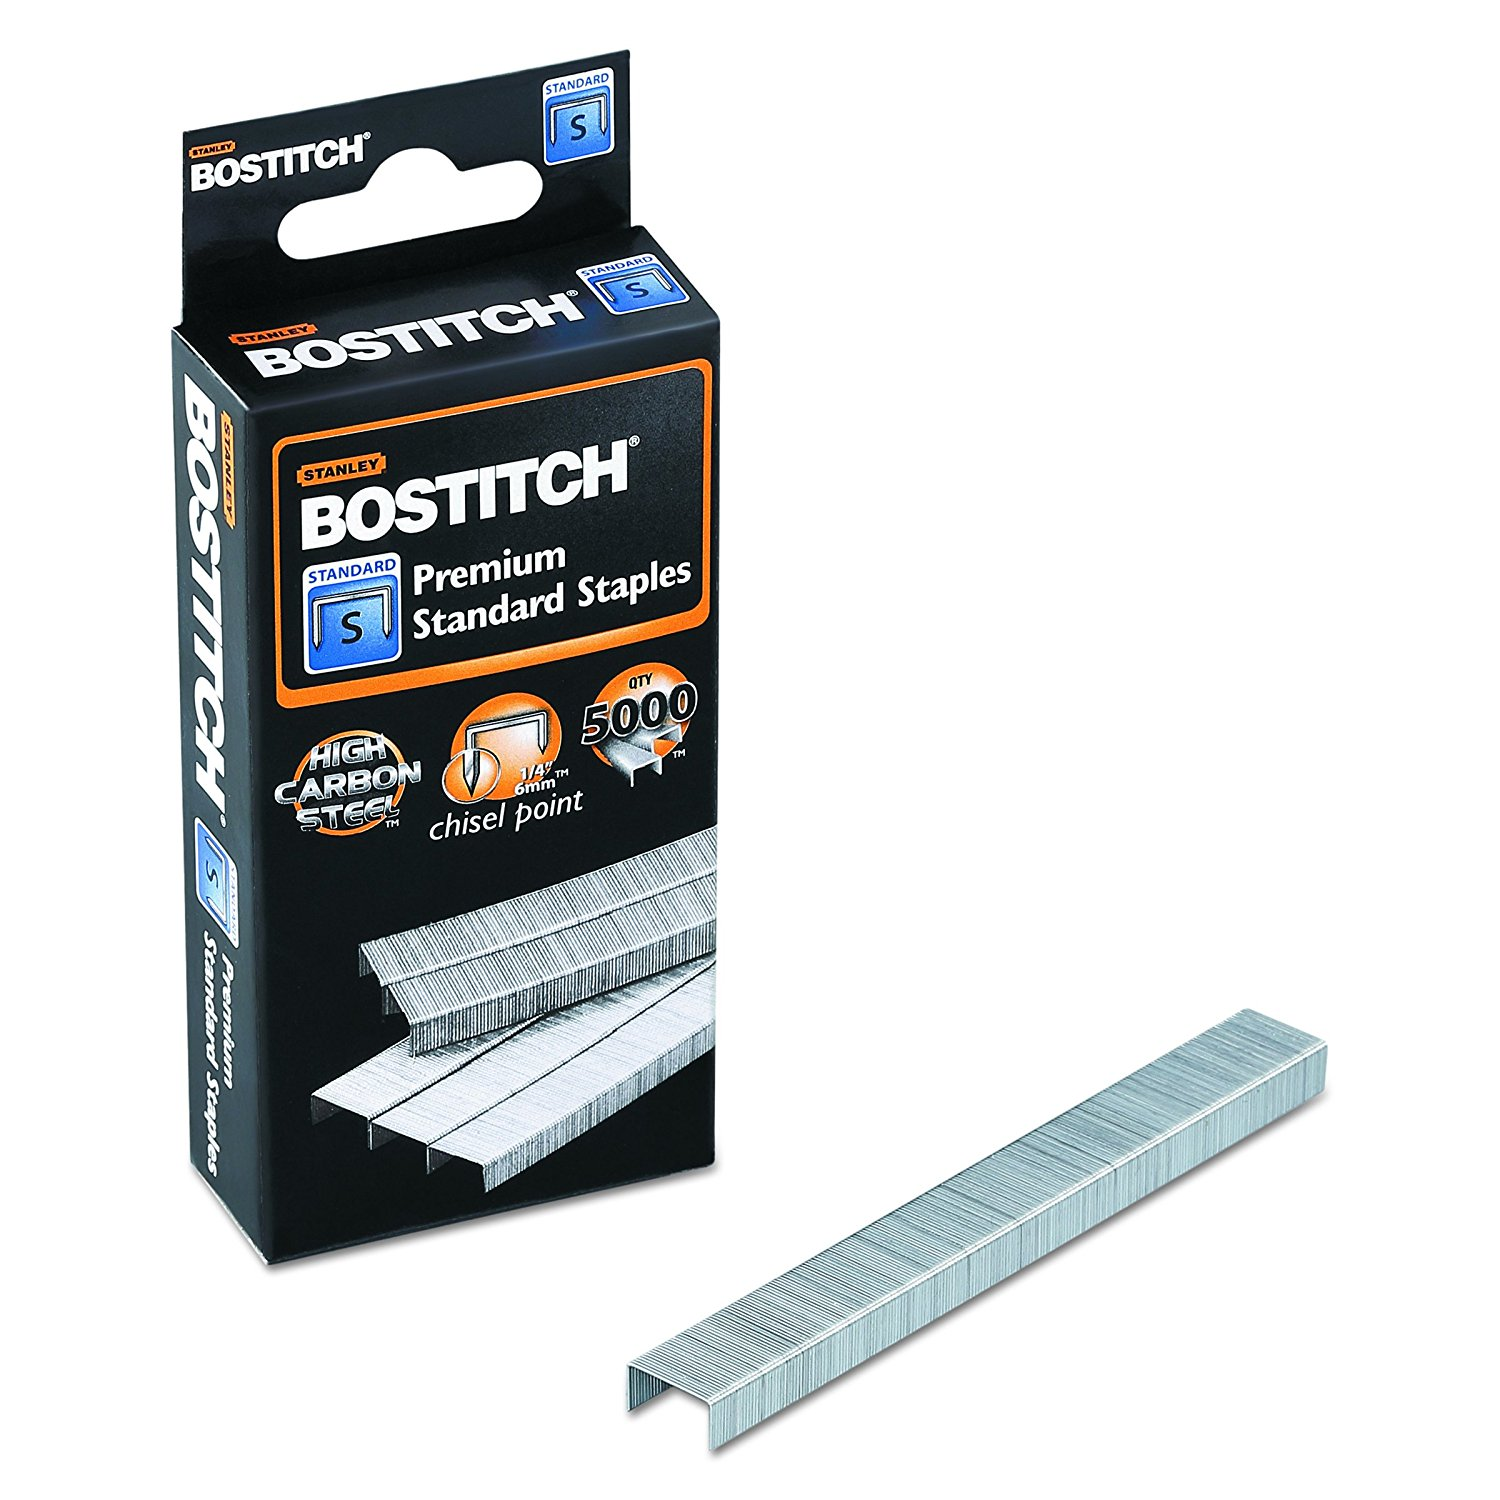 Bostitch Premium Standard Staples